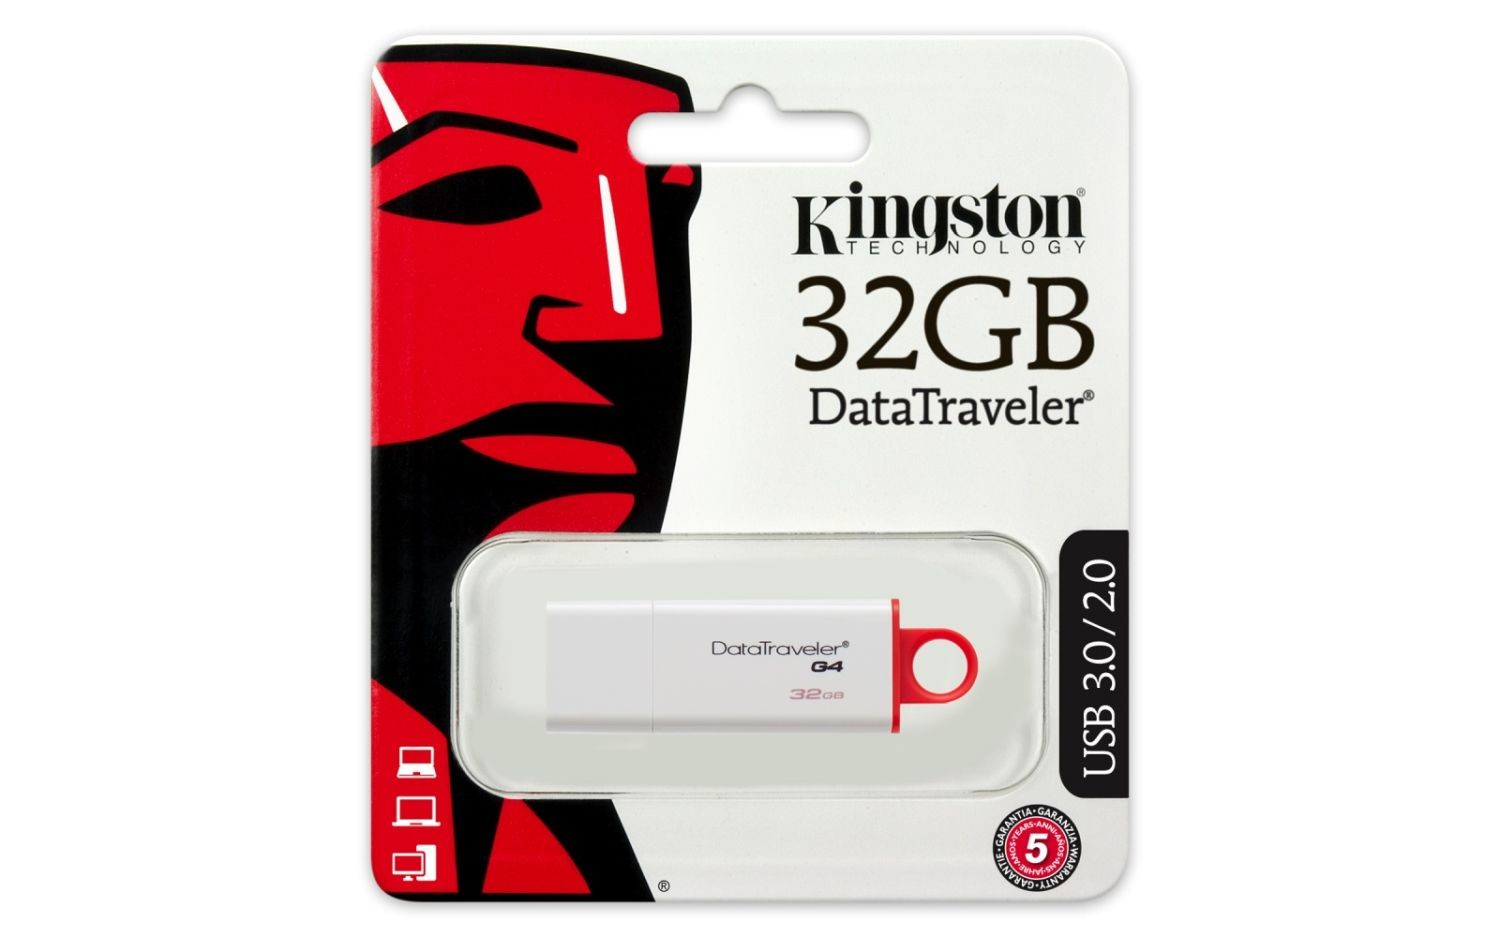 Kingston pamięć USB 32GB DataTraveler I G4 - Red